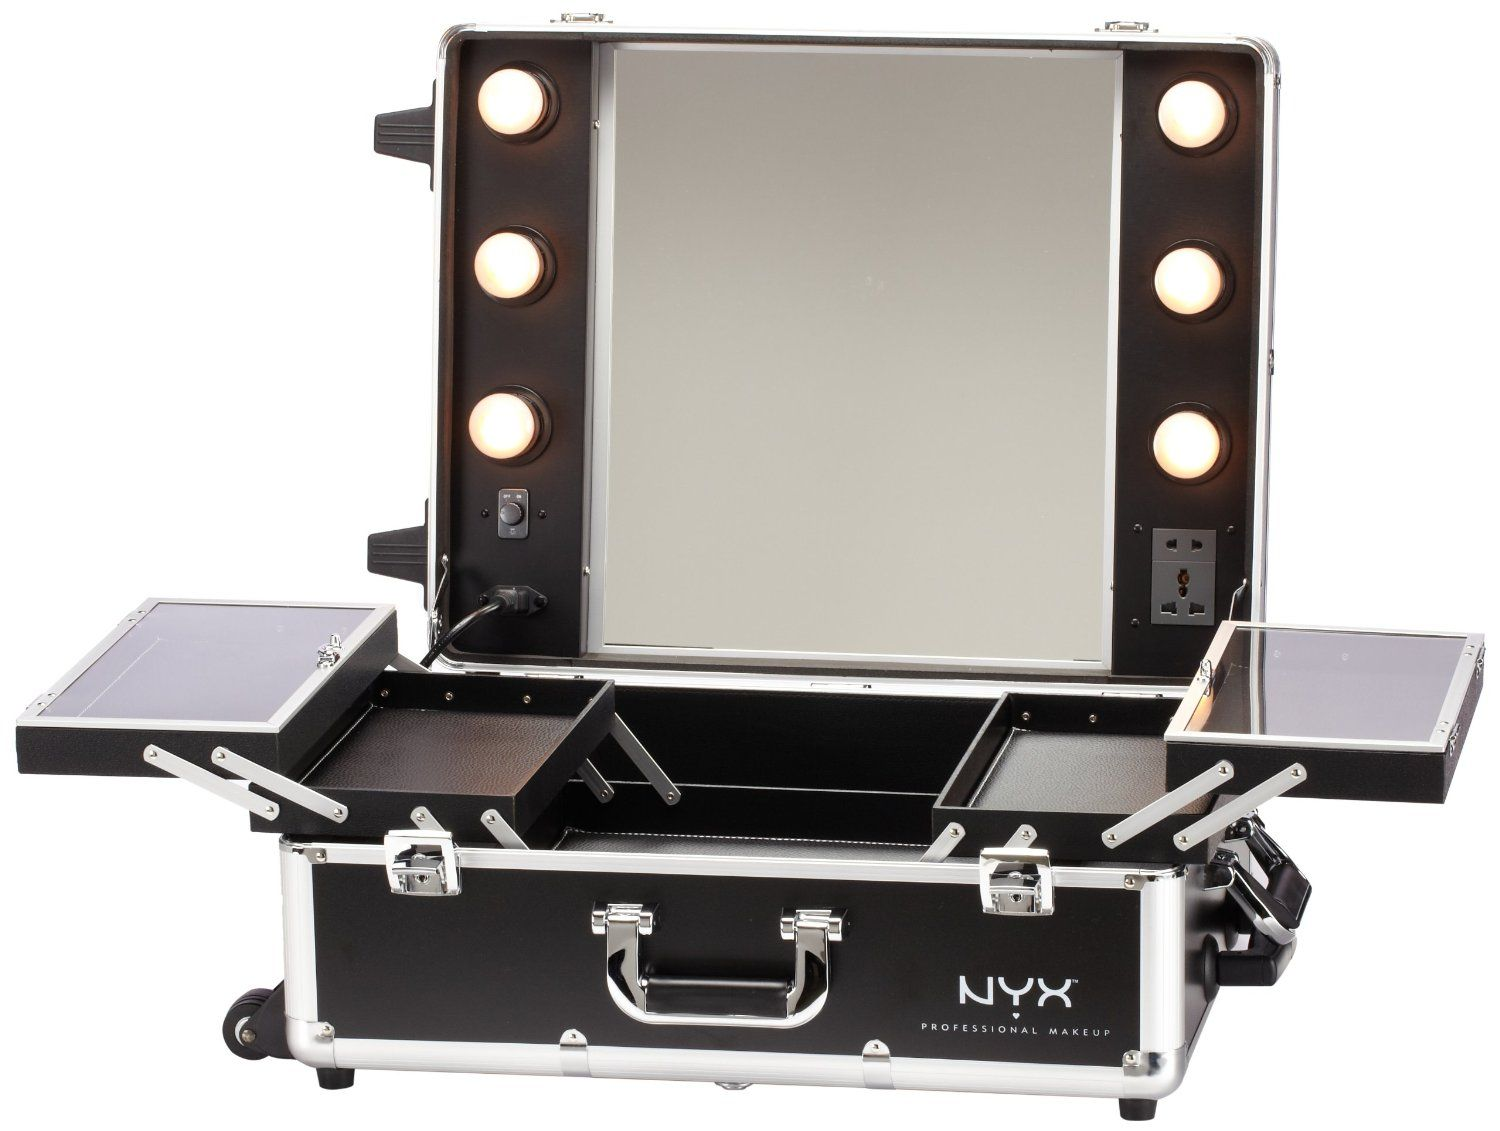 Vanity Suitcase With Lights Amazon Nyx Makeup Artist Train Case With Lights Extra Large